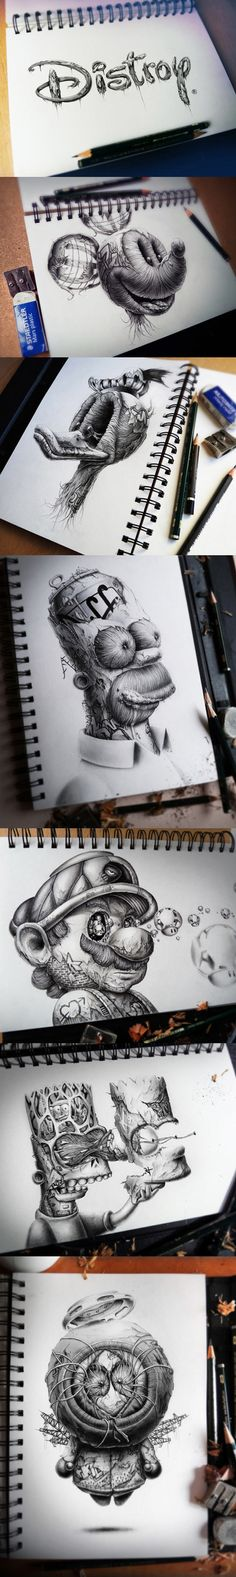 Distroy by PEZ…CReepy but unbelieveably talented